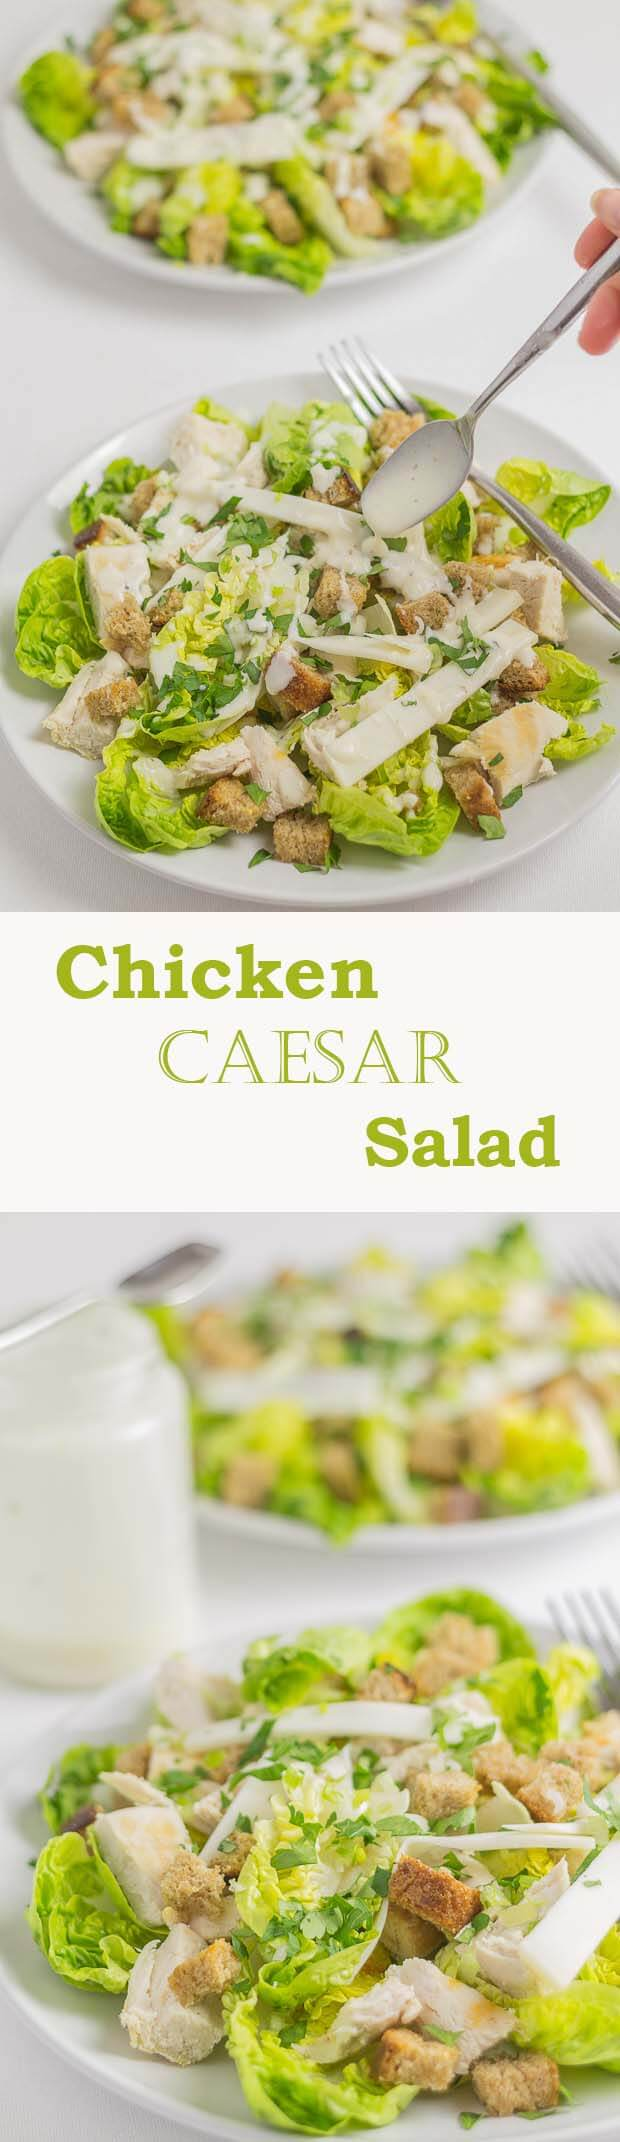 Chicken Caesar salad made healthier with wholemeal croutons and a lower calorie dressing. It's basically the same taste as the delicious original, you just wont be counting the impact of the calories with this version!